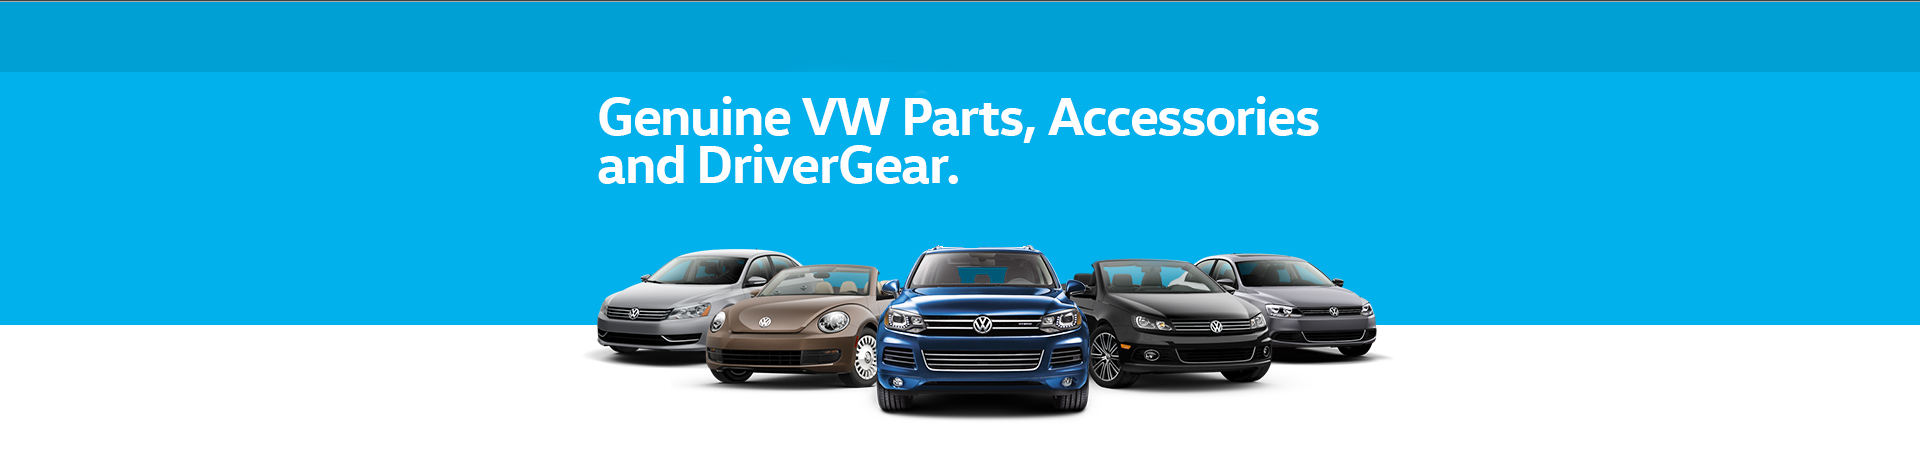 VW Genuine Parts